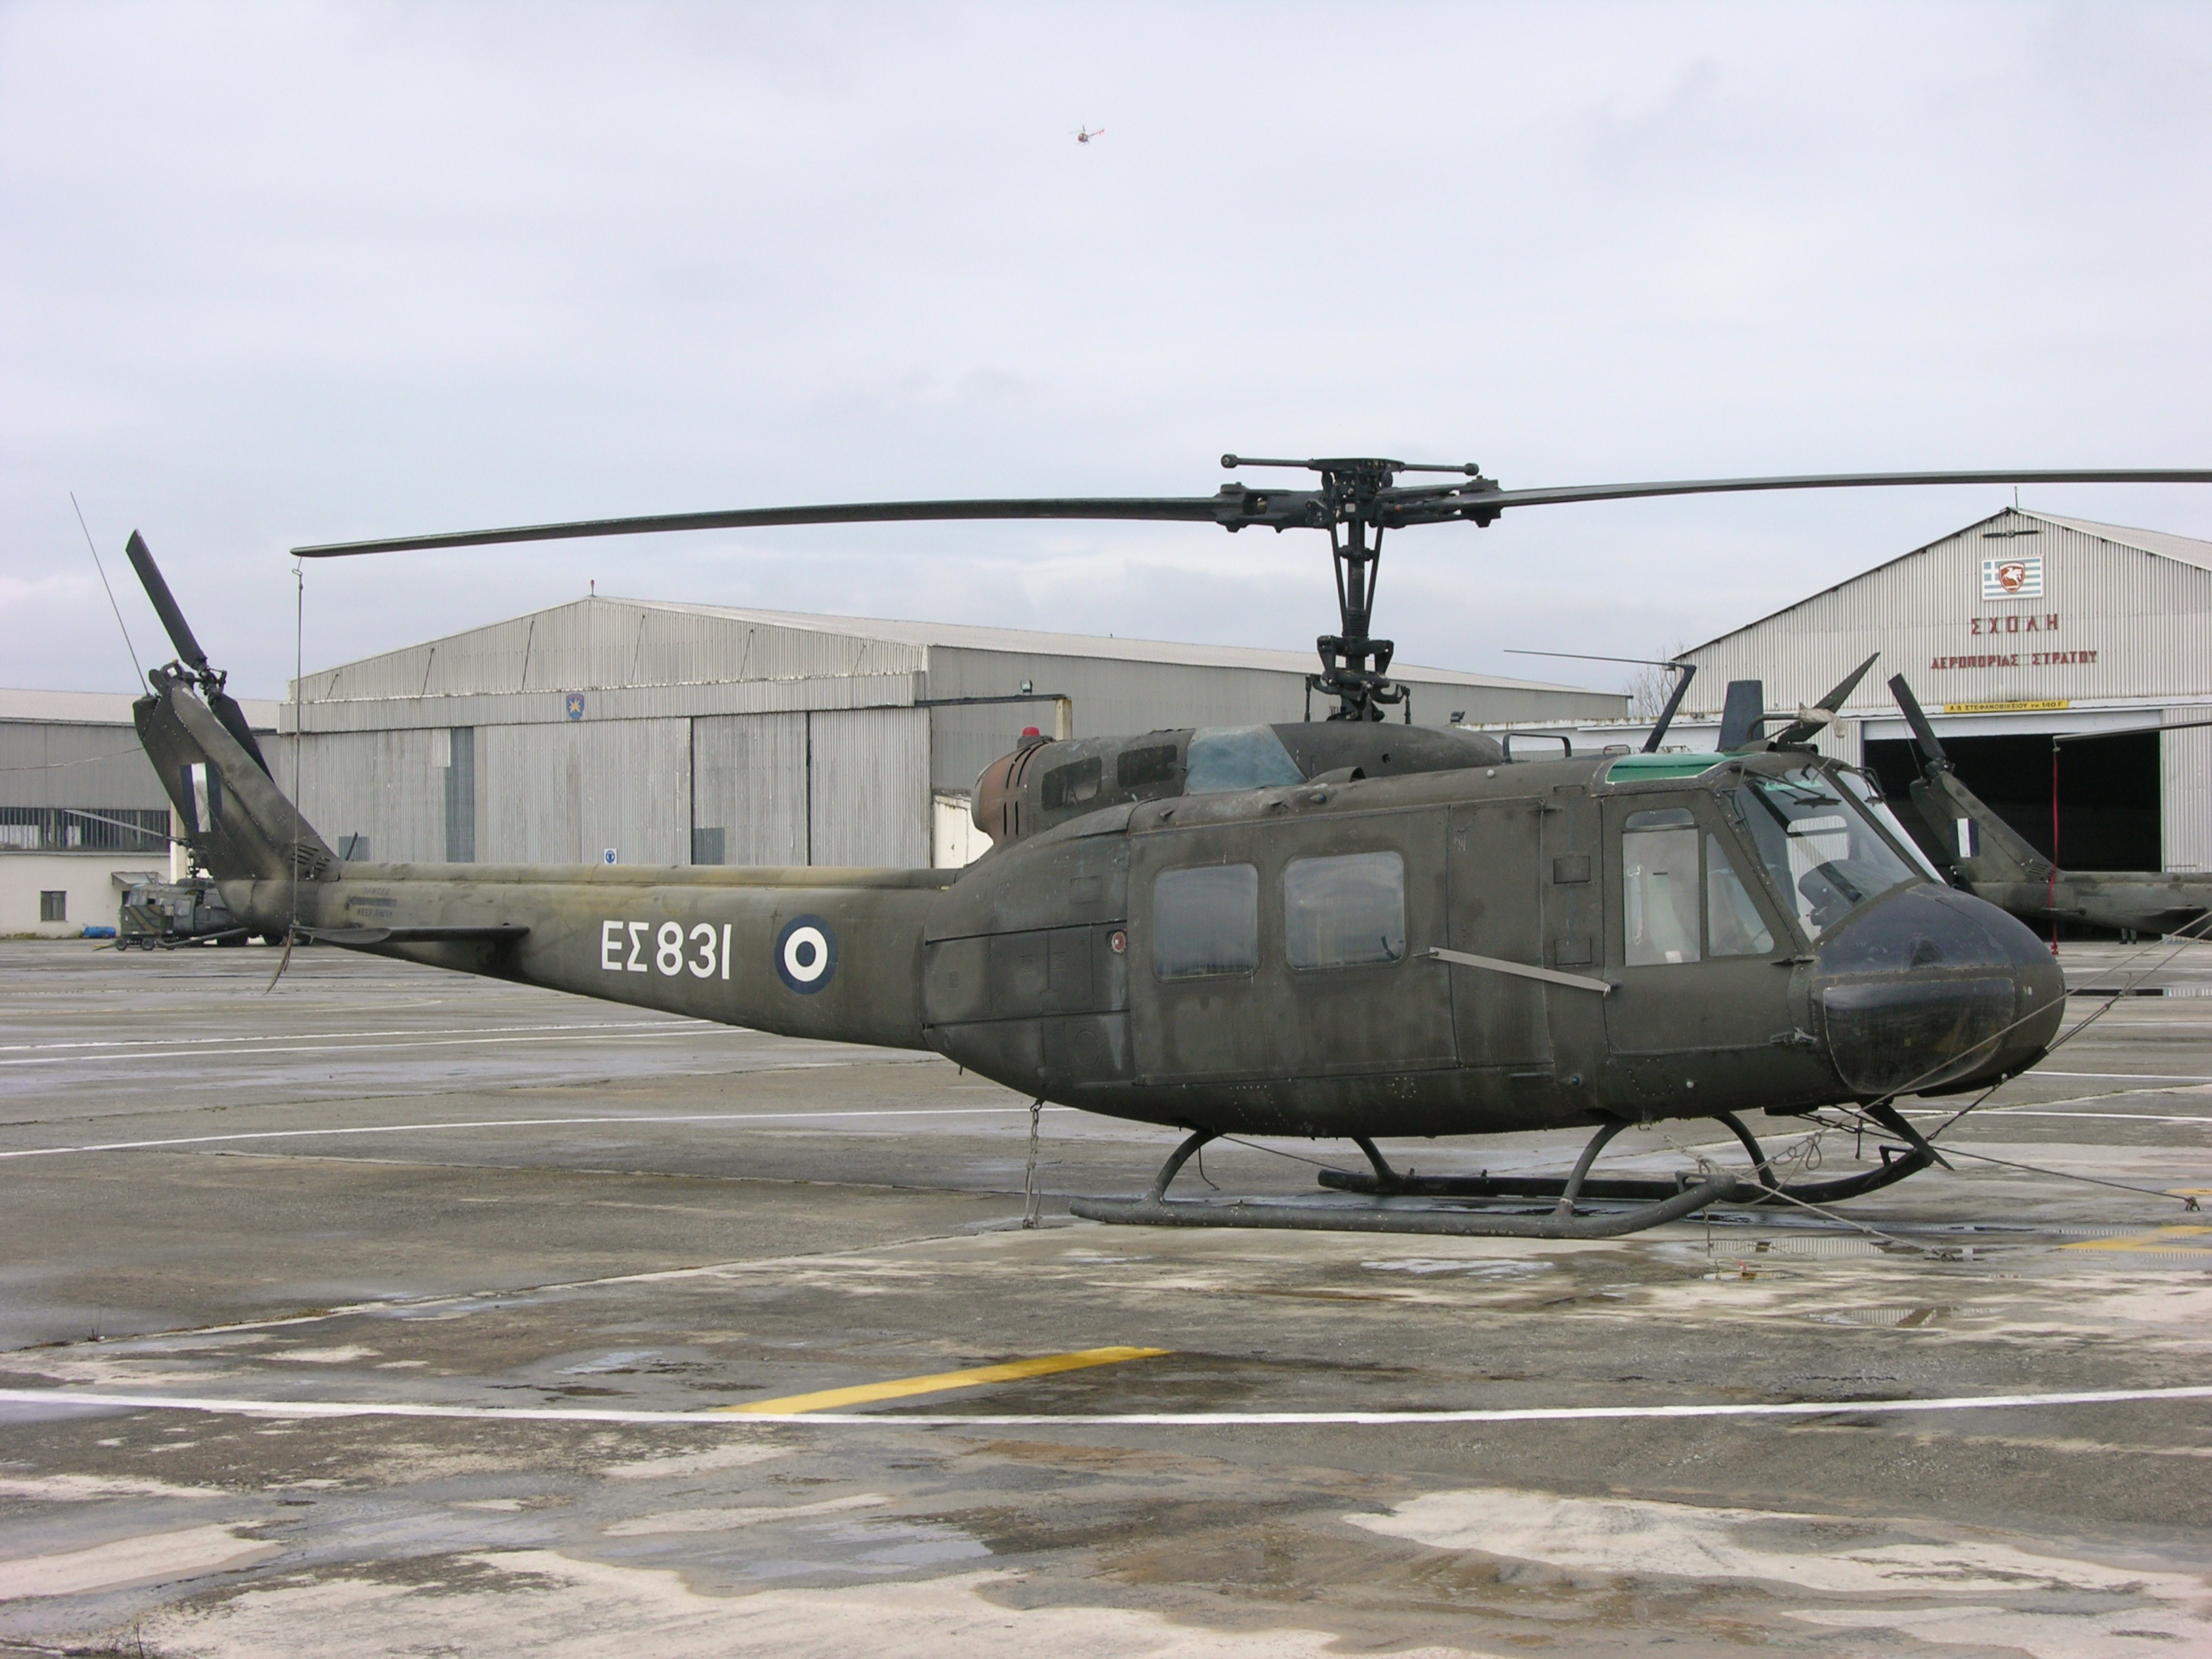 bell military helicopters with File Hellenic Army Uh 1 on Th 57 Pics besides 37 together with File Hellenic Army UH 1 in addition Watch moreover Bell 47 g3 ecuvillens 1.